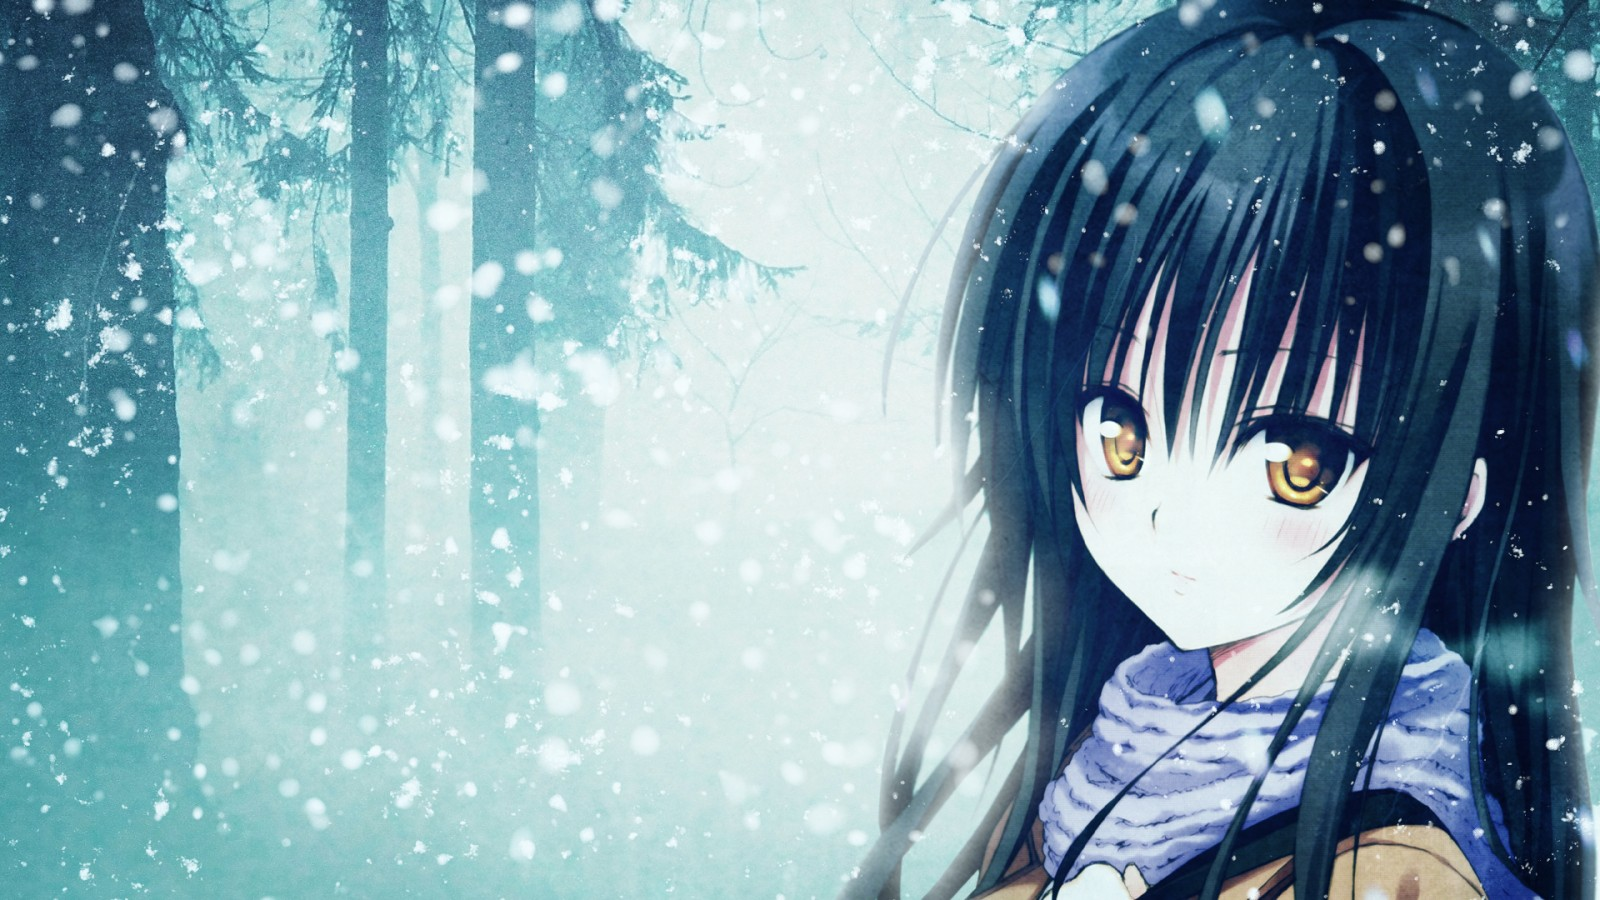 Anime Girl Wallpapers  Wallpaper  1600x900